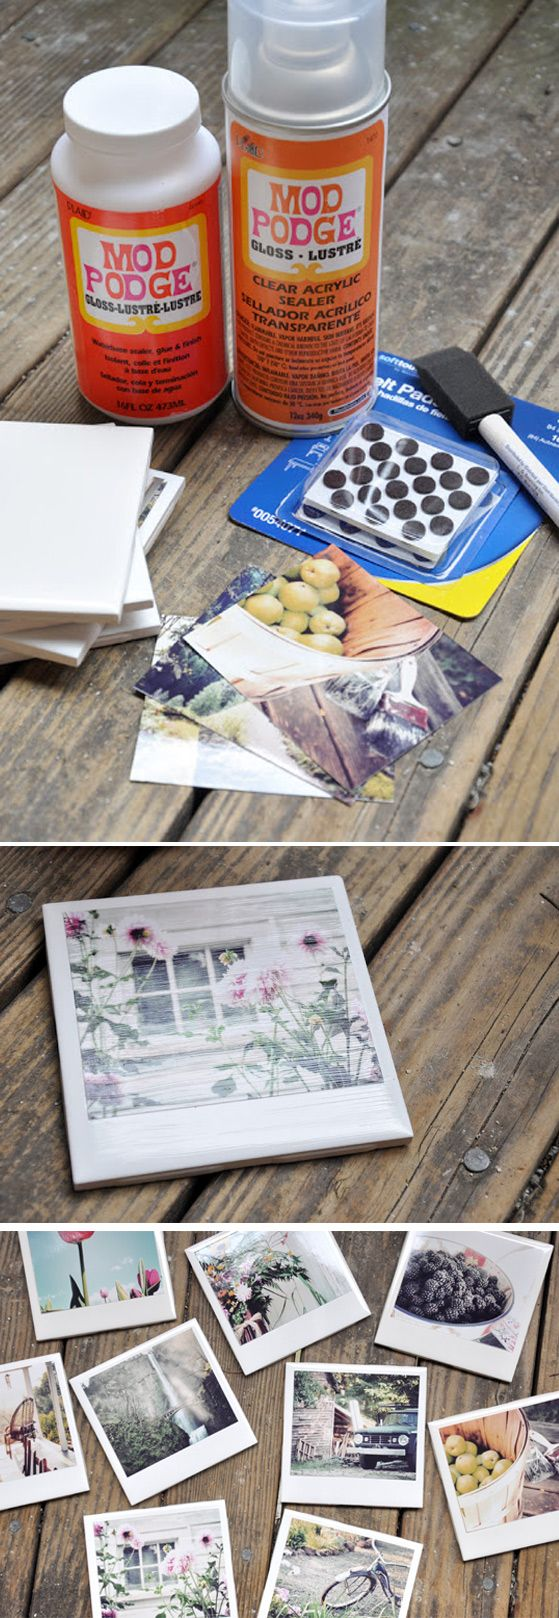 Instagram Polaroid Coasters                                                                                                                                                      More